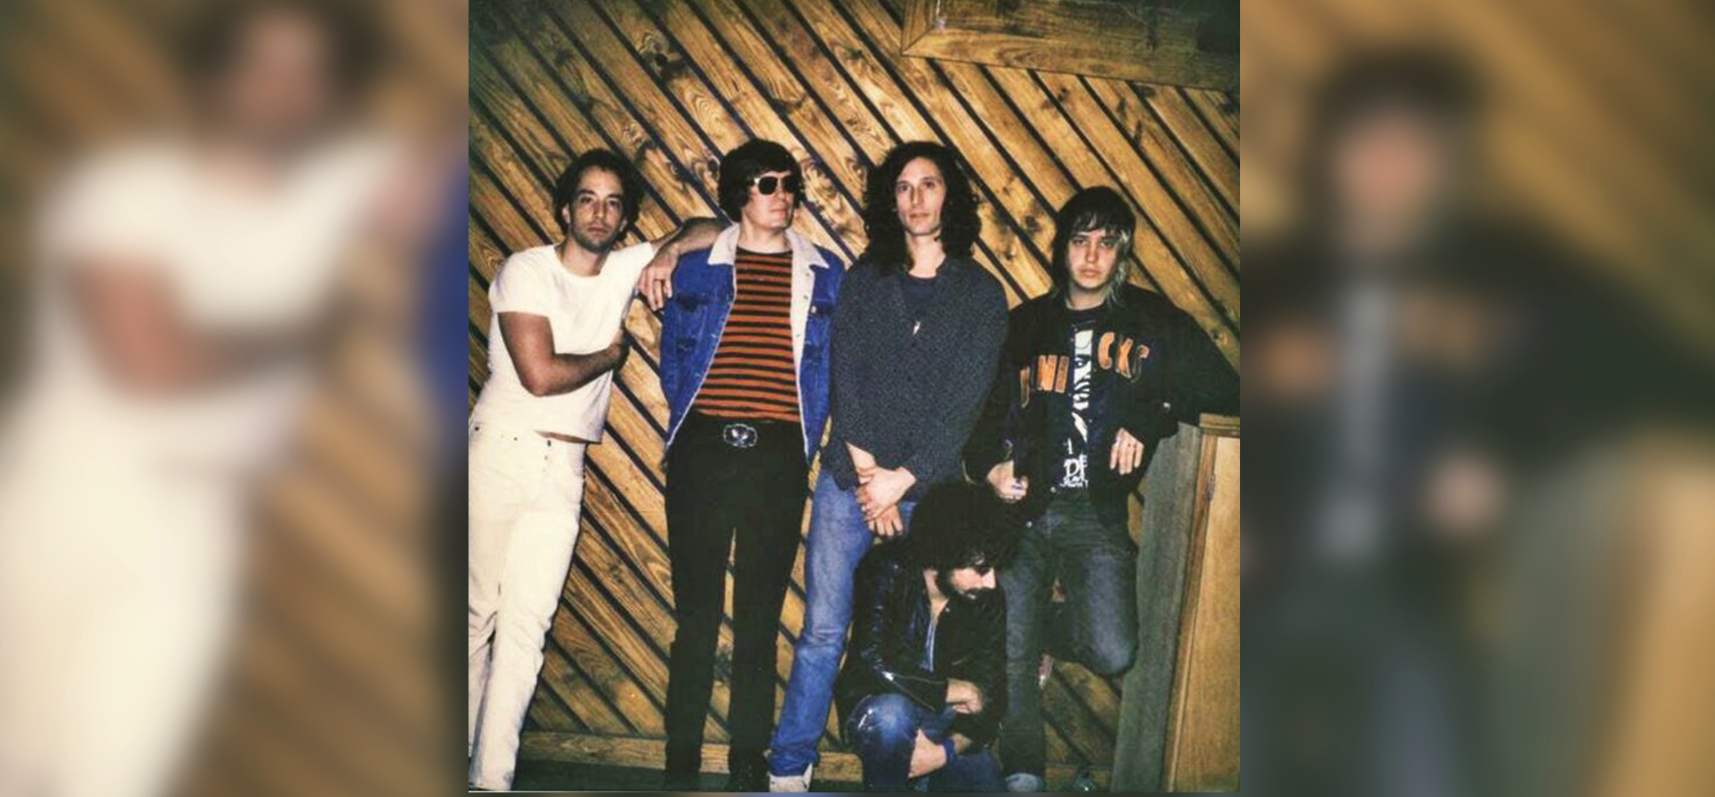 Win FREE tickets to see icons The Strokes live in Vancouver (CONTEST)